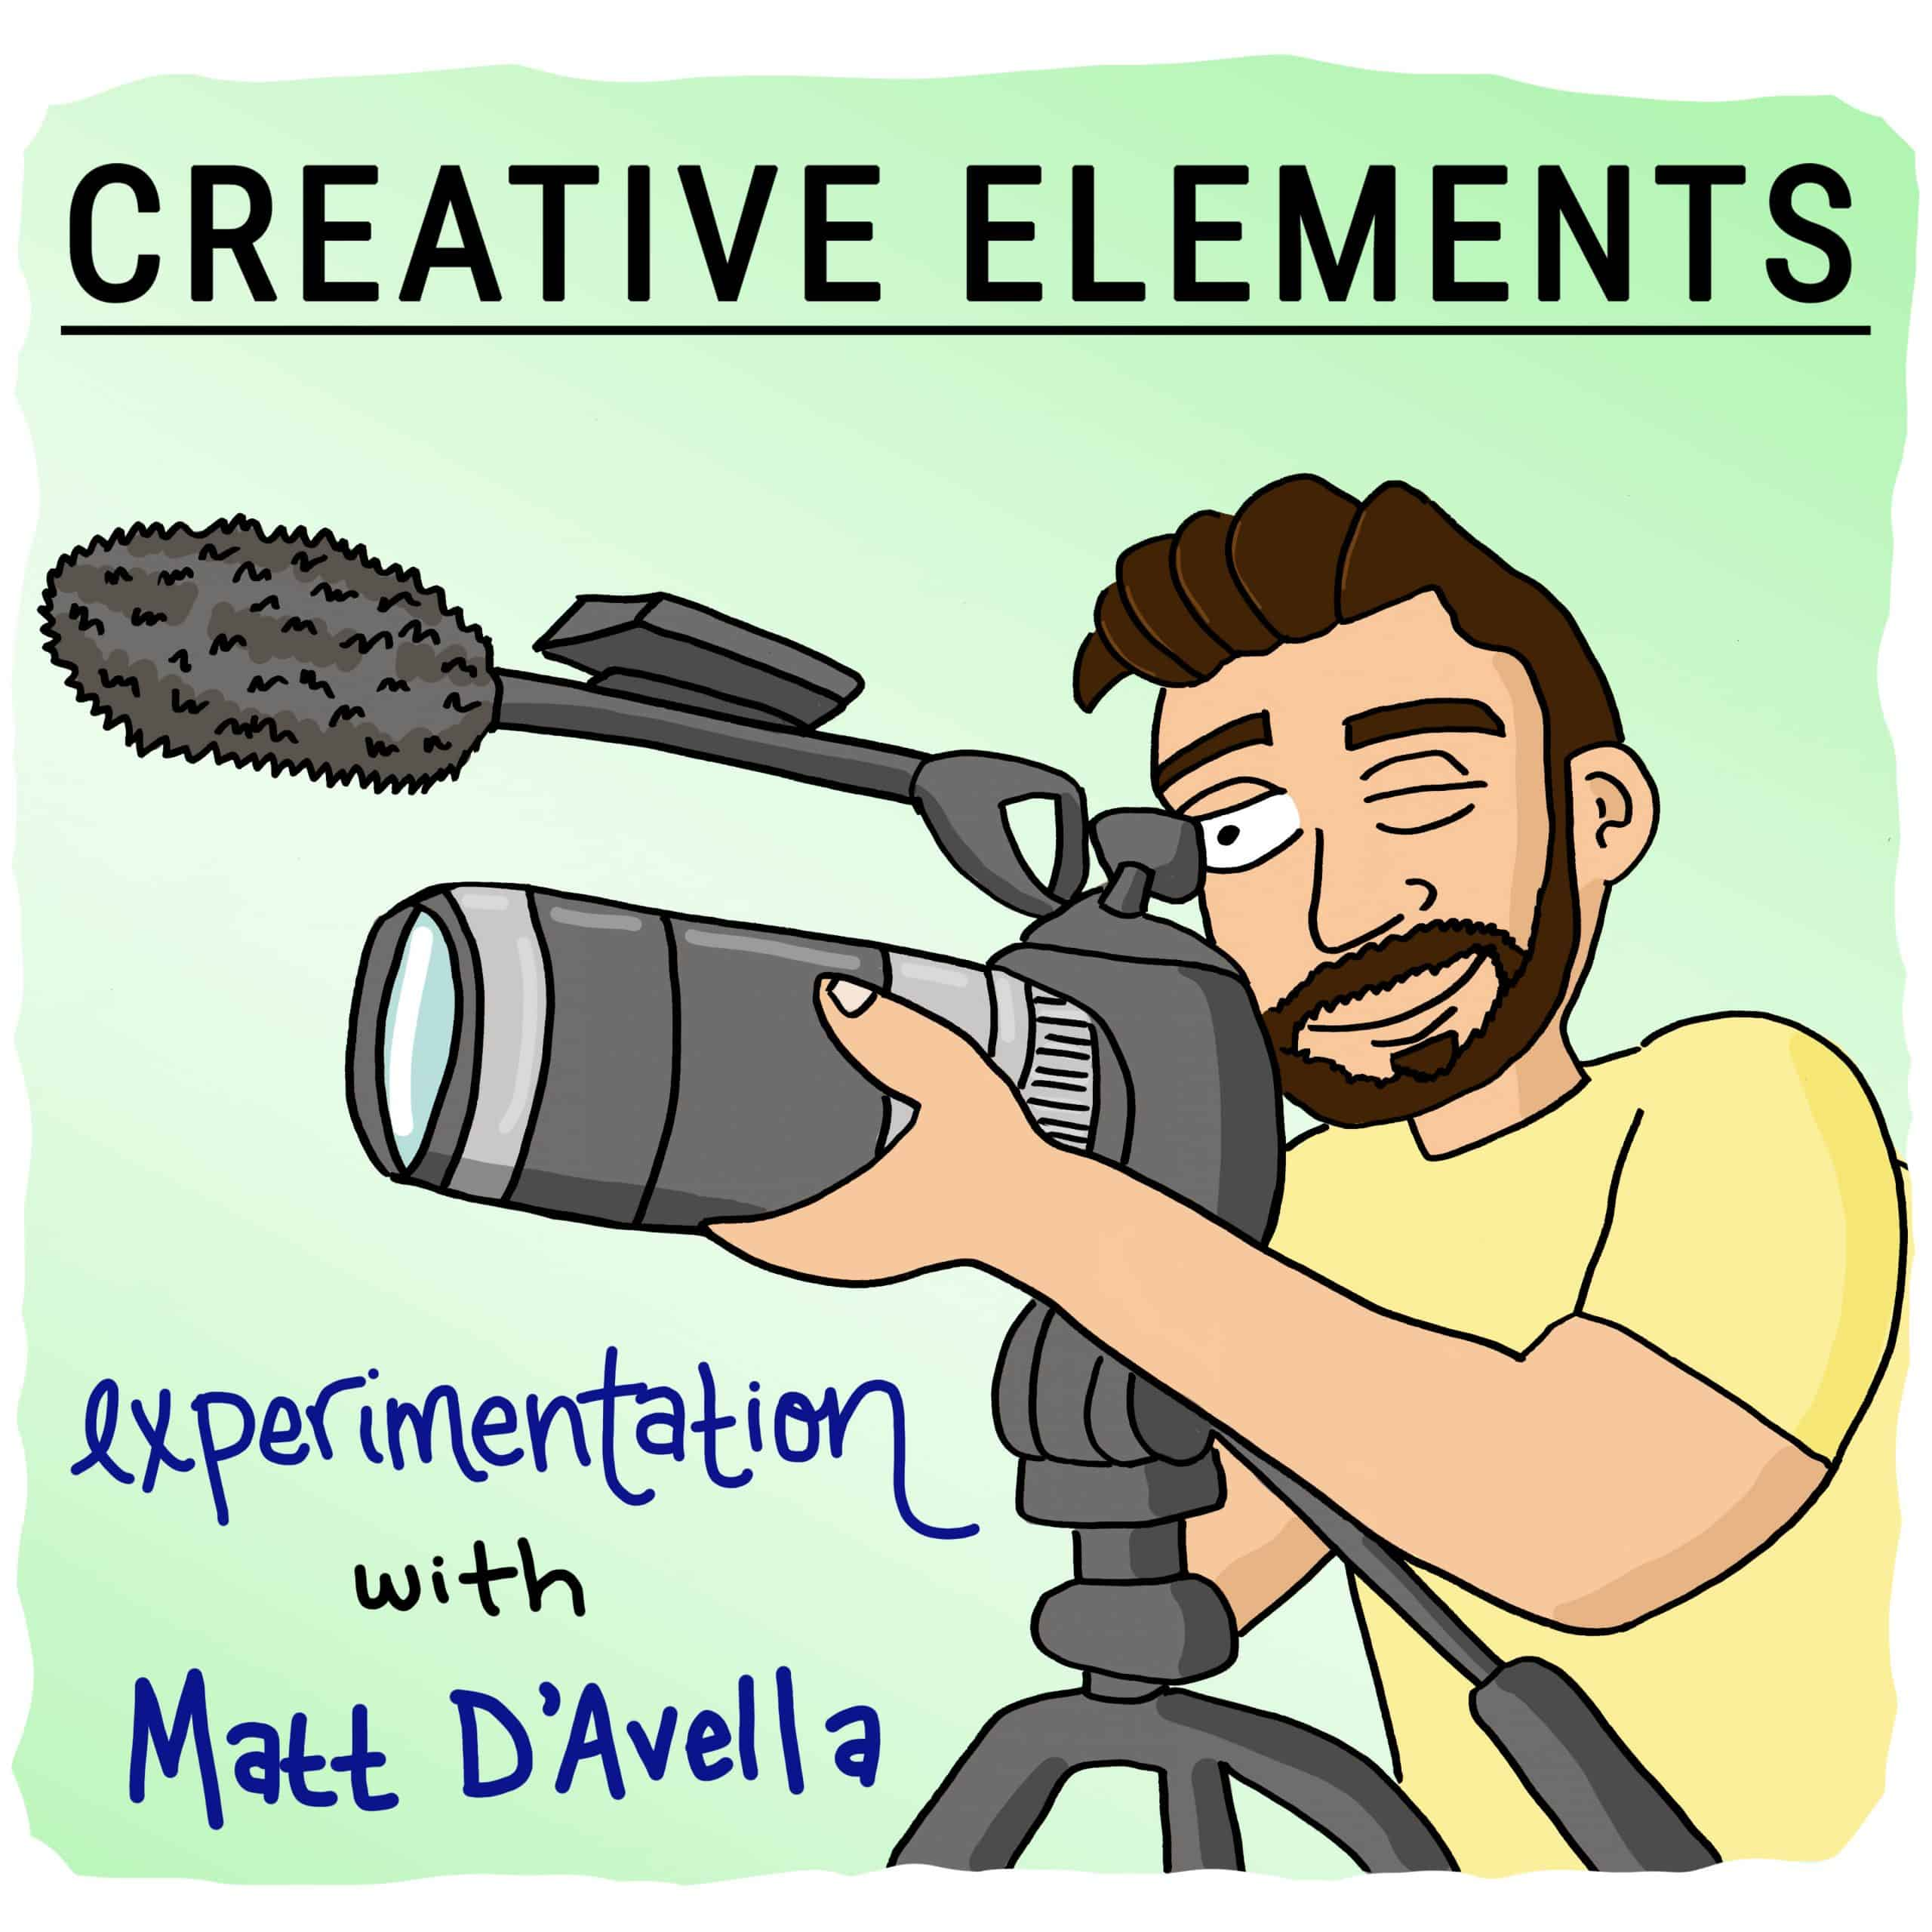 Matt D'Avella on Creative Elements